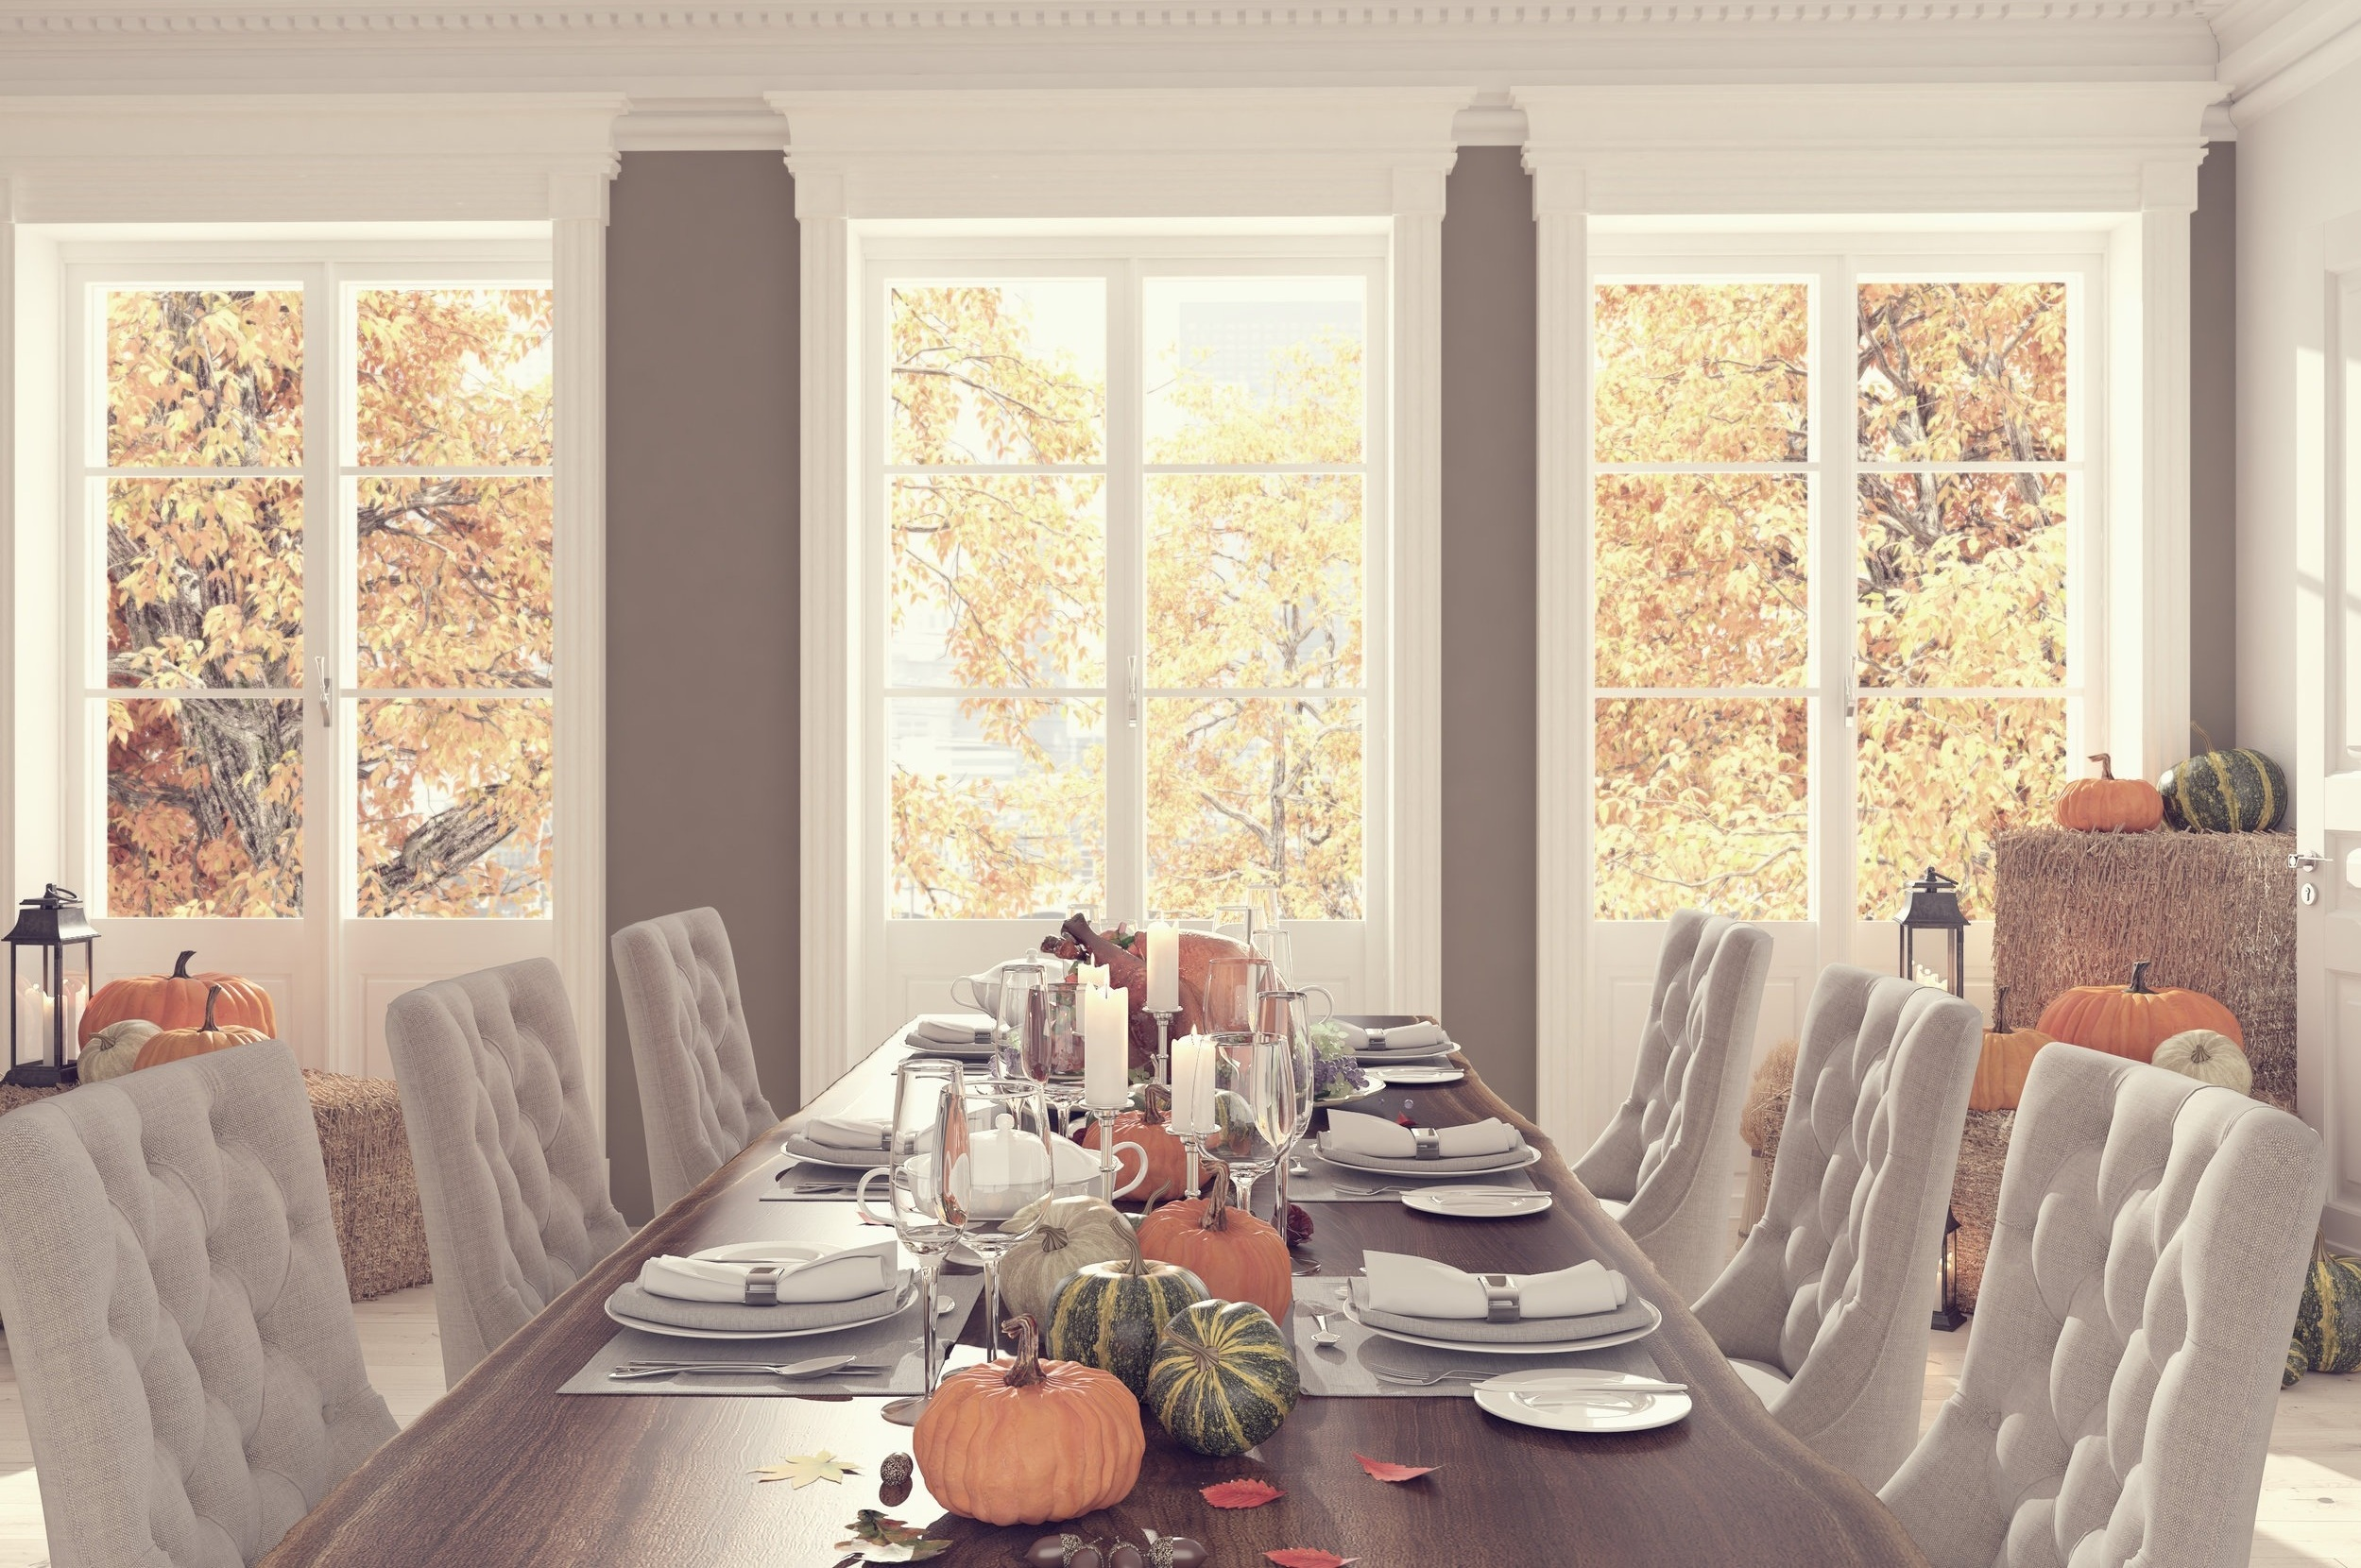 From flooring to window coverings, let our team take care of all your decorating needs. -